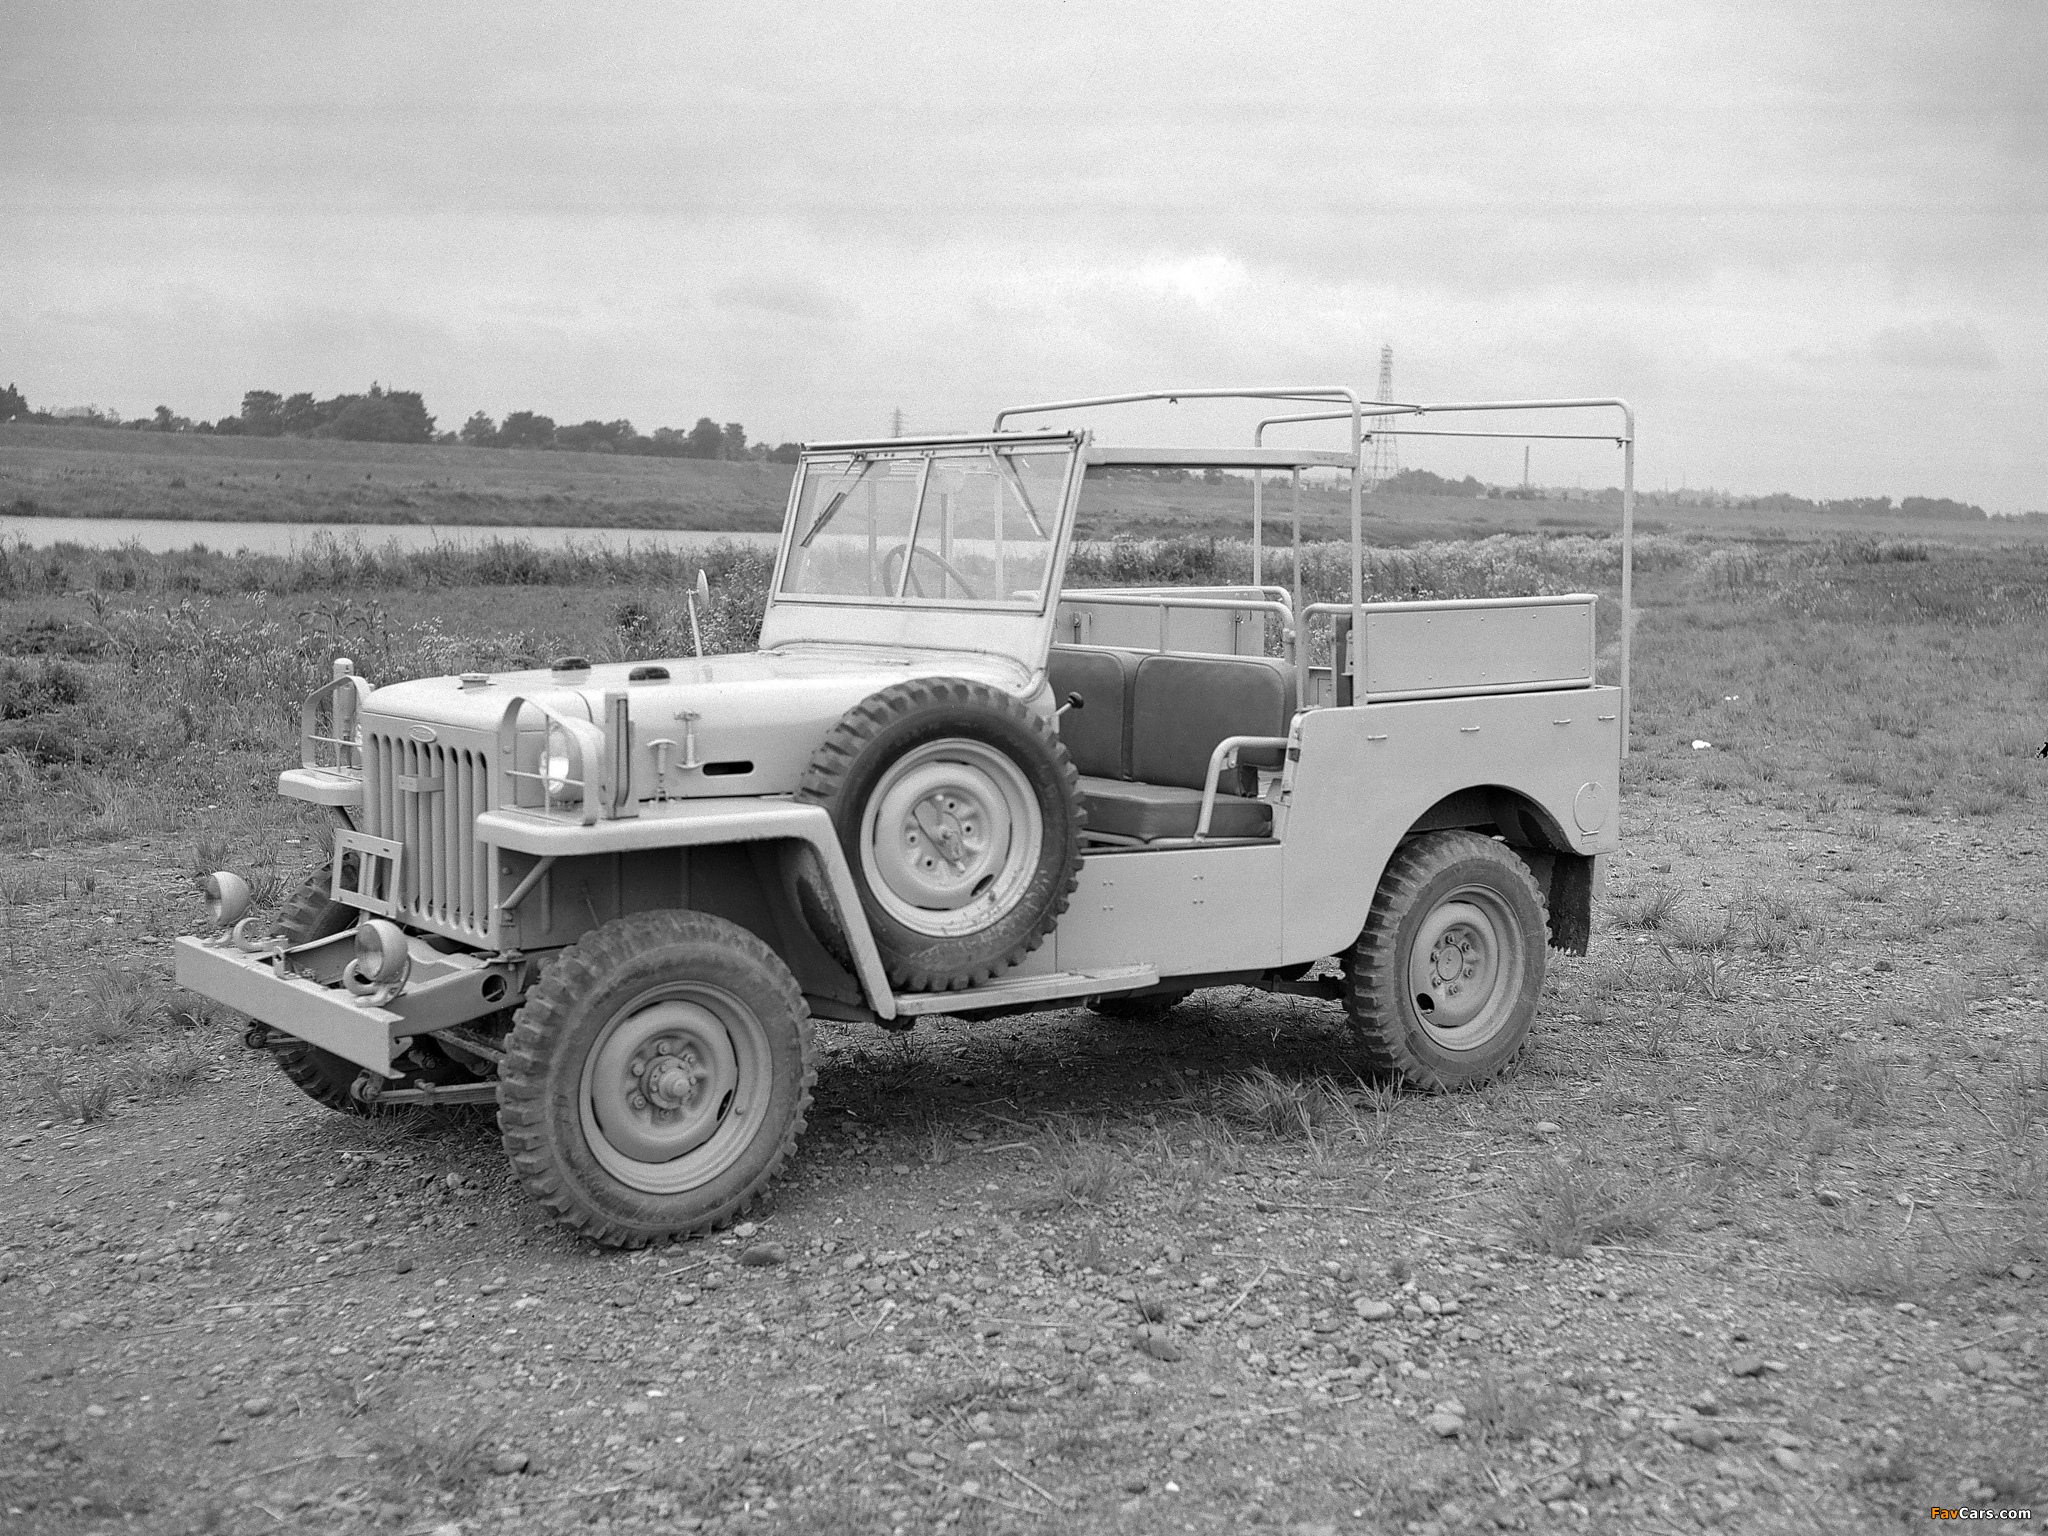 toyota_jeep_bj_1951_pictures_5